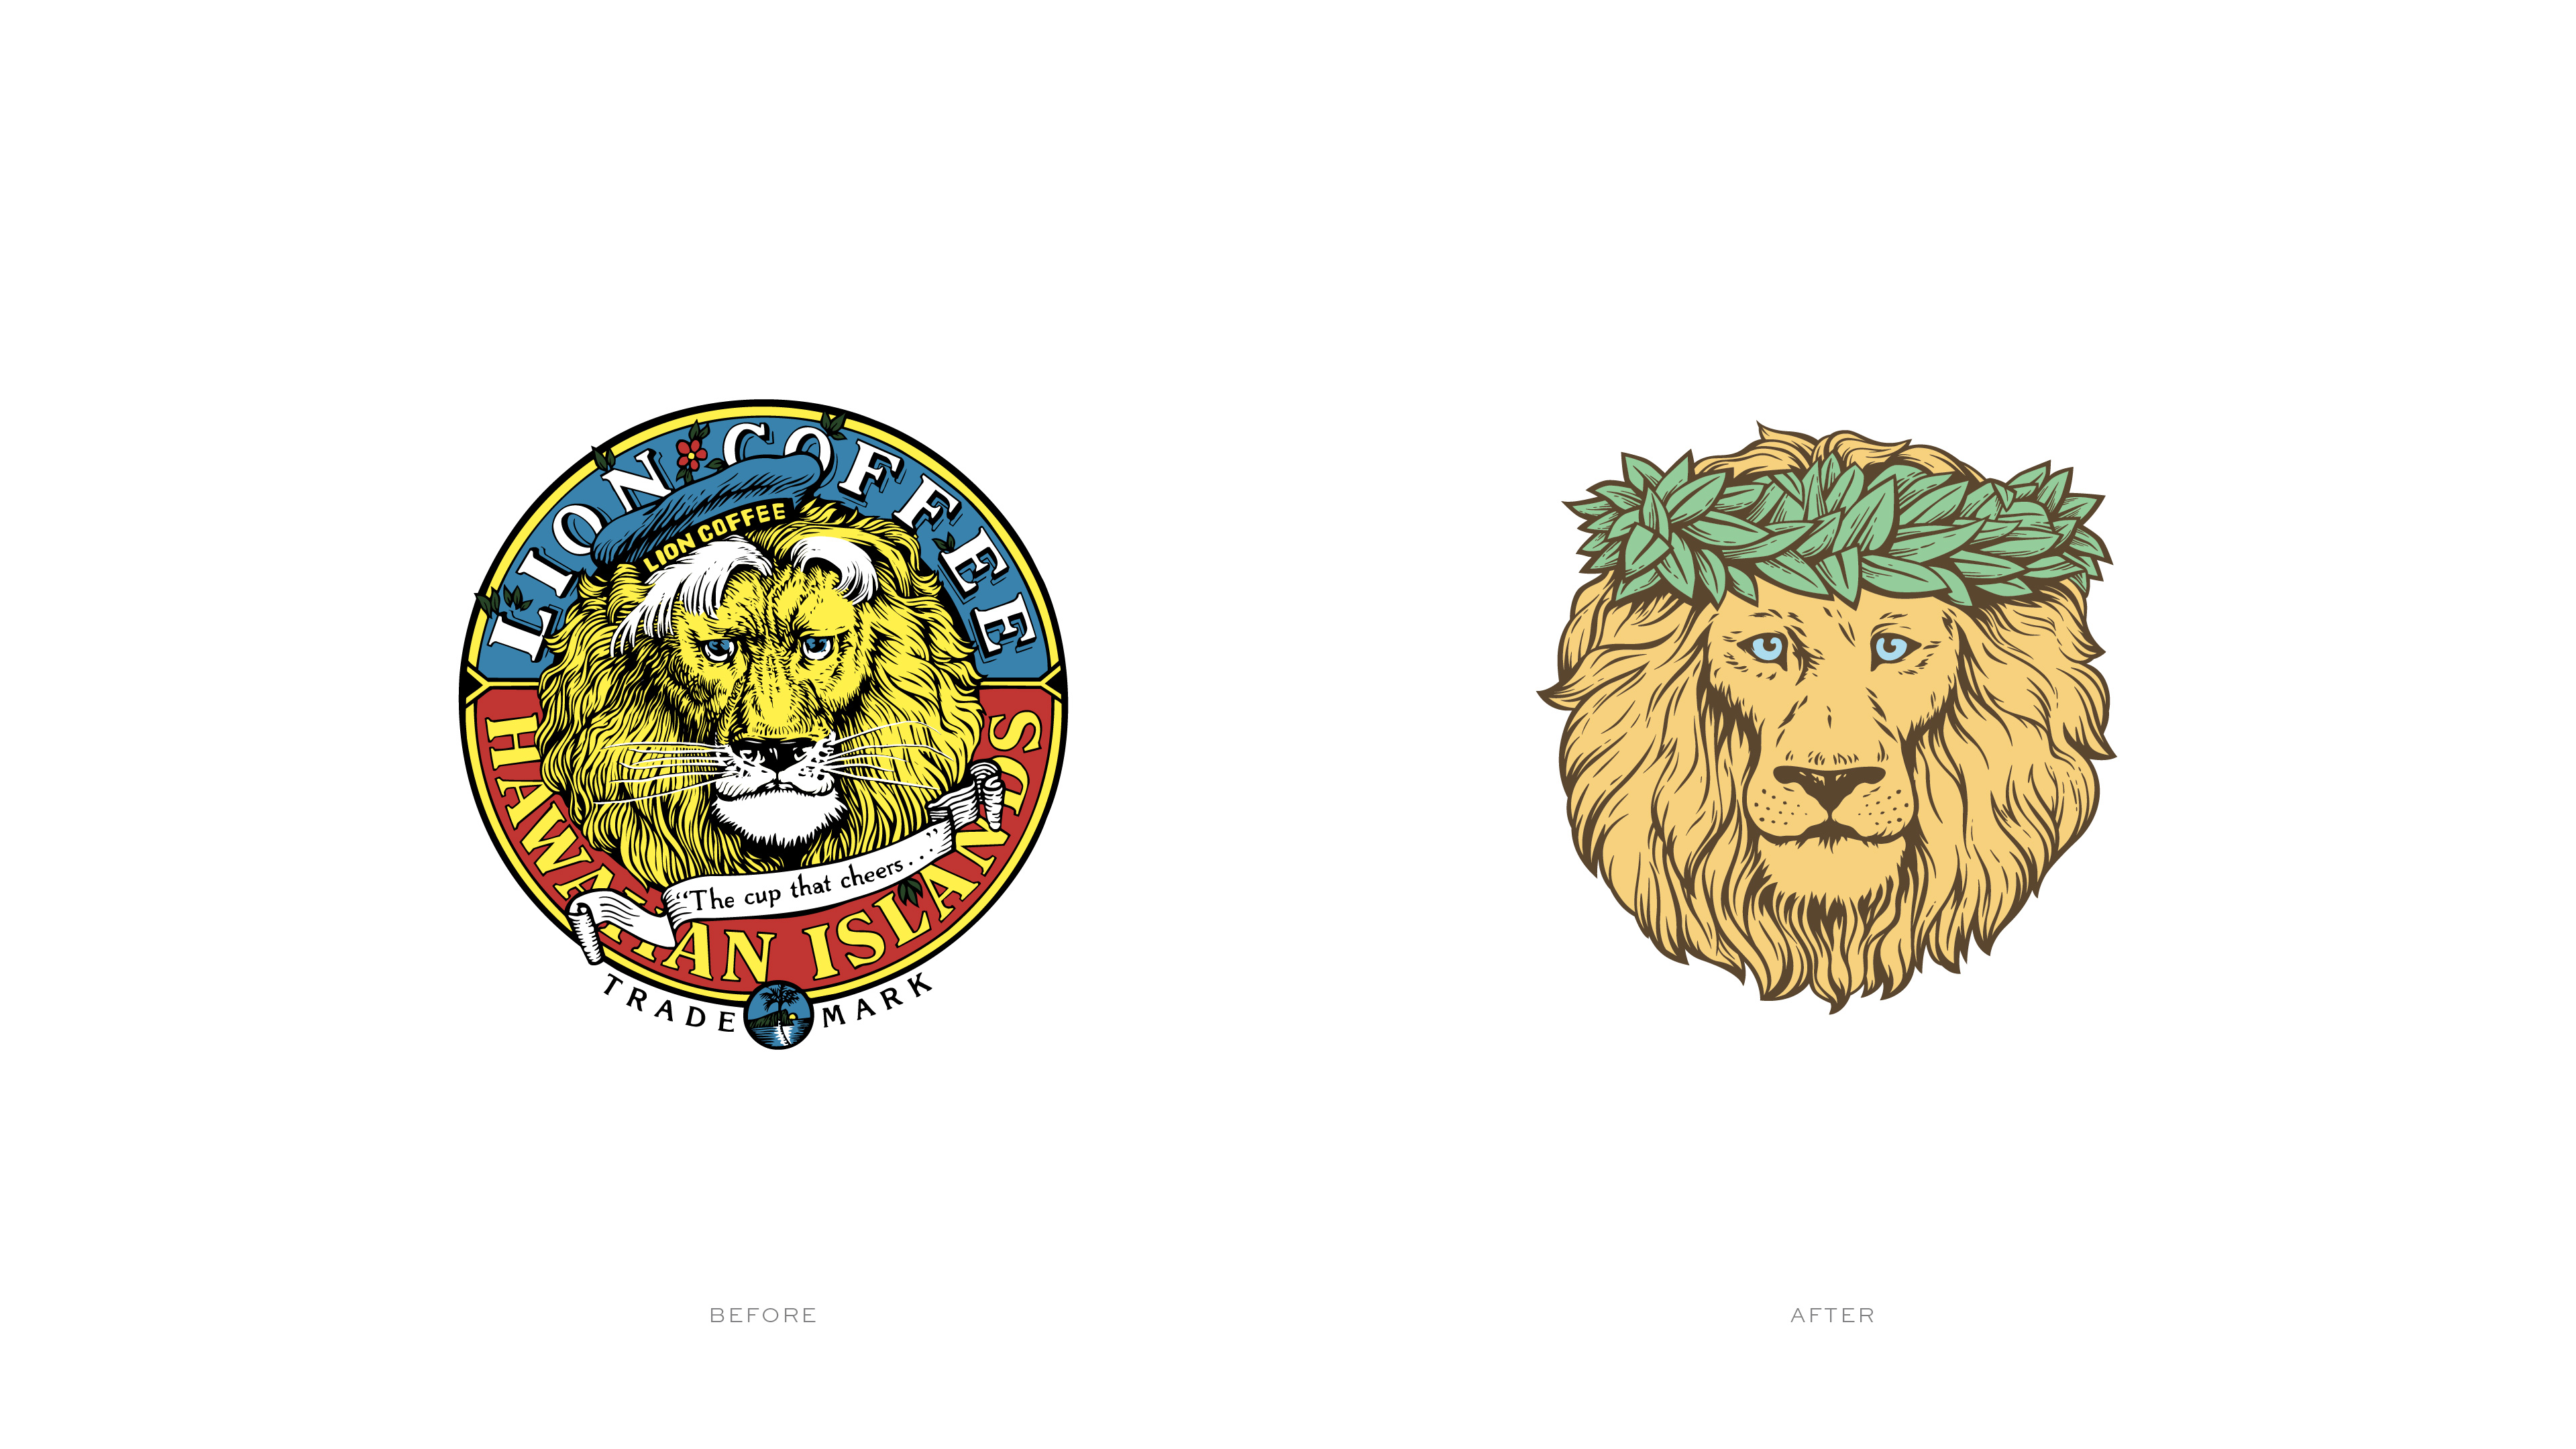 Lion logo before after 2x